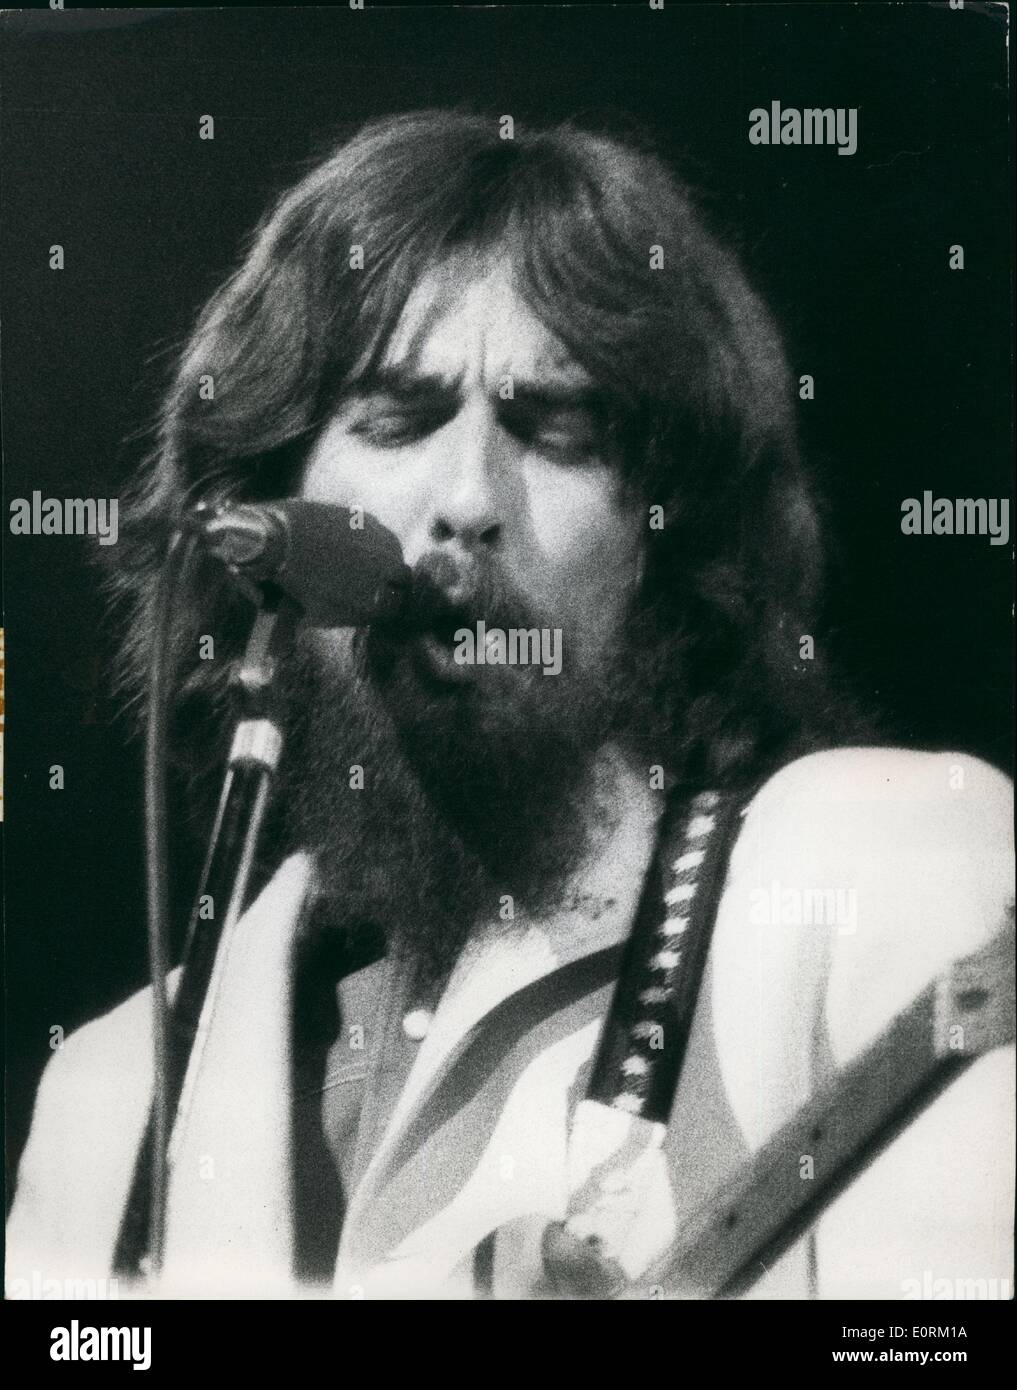 Jan 1, 1960 - The new George Harrison, as seem om tion during the concert in New york. - Stock Image